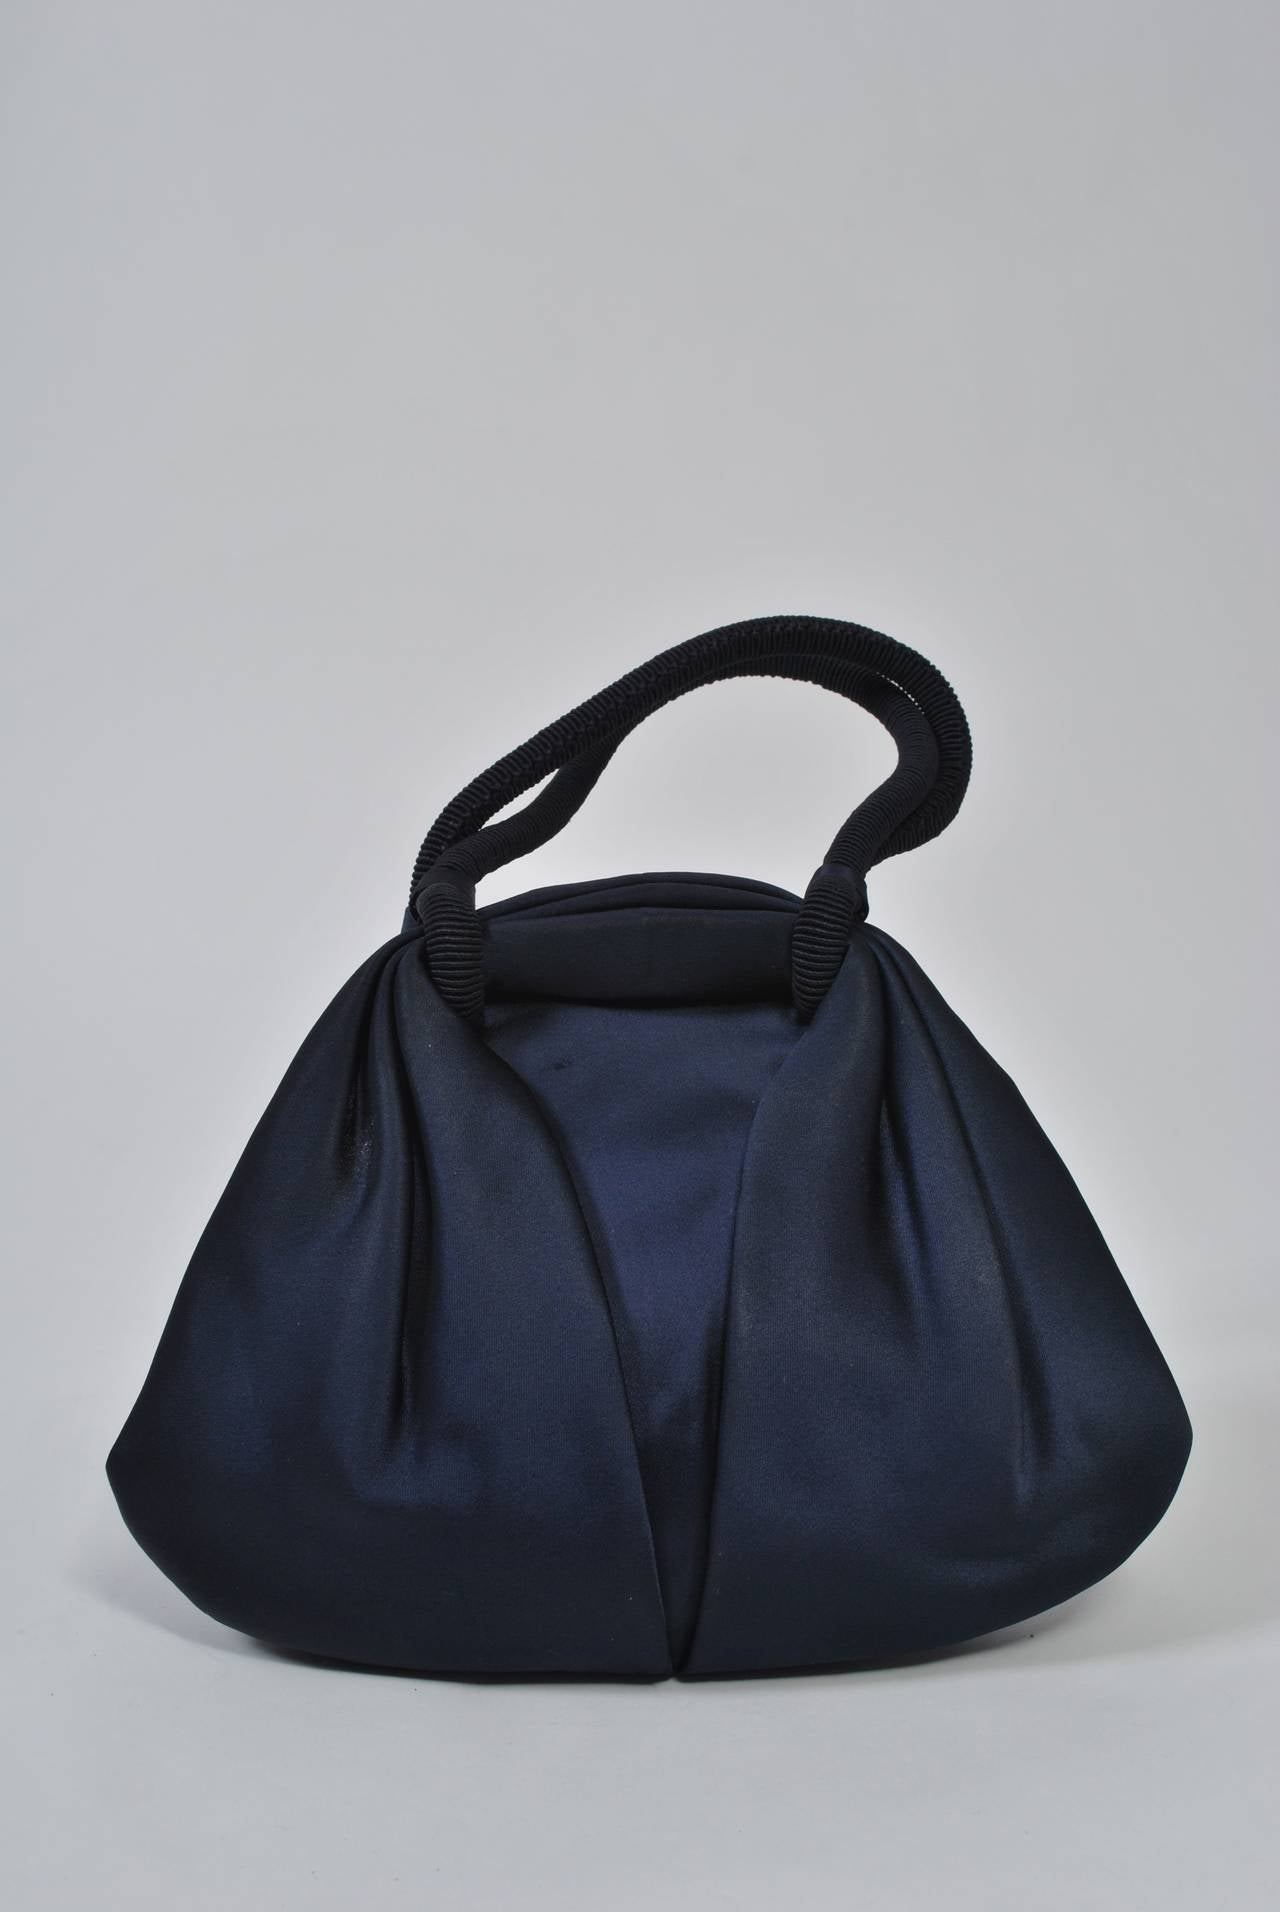 Navy Satin Purse with Tortoise Kiss Clasp, Paris 2